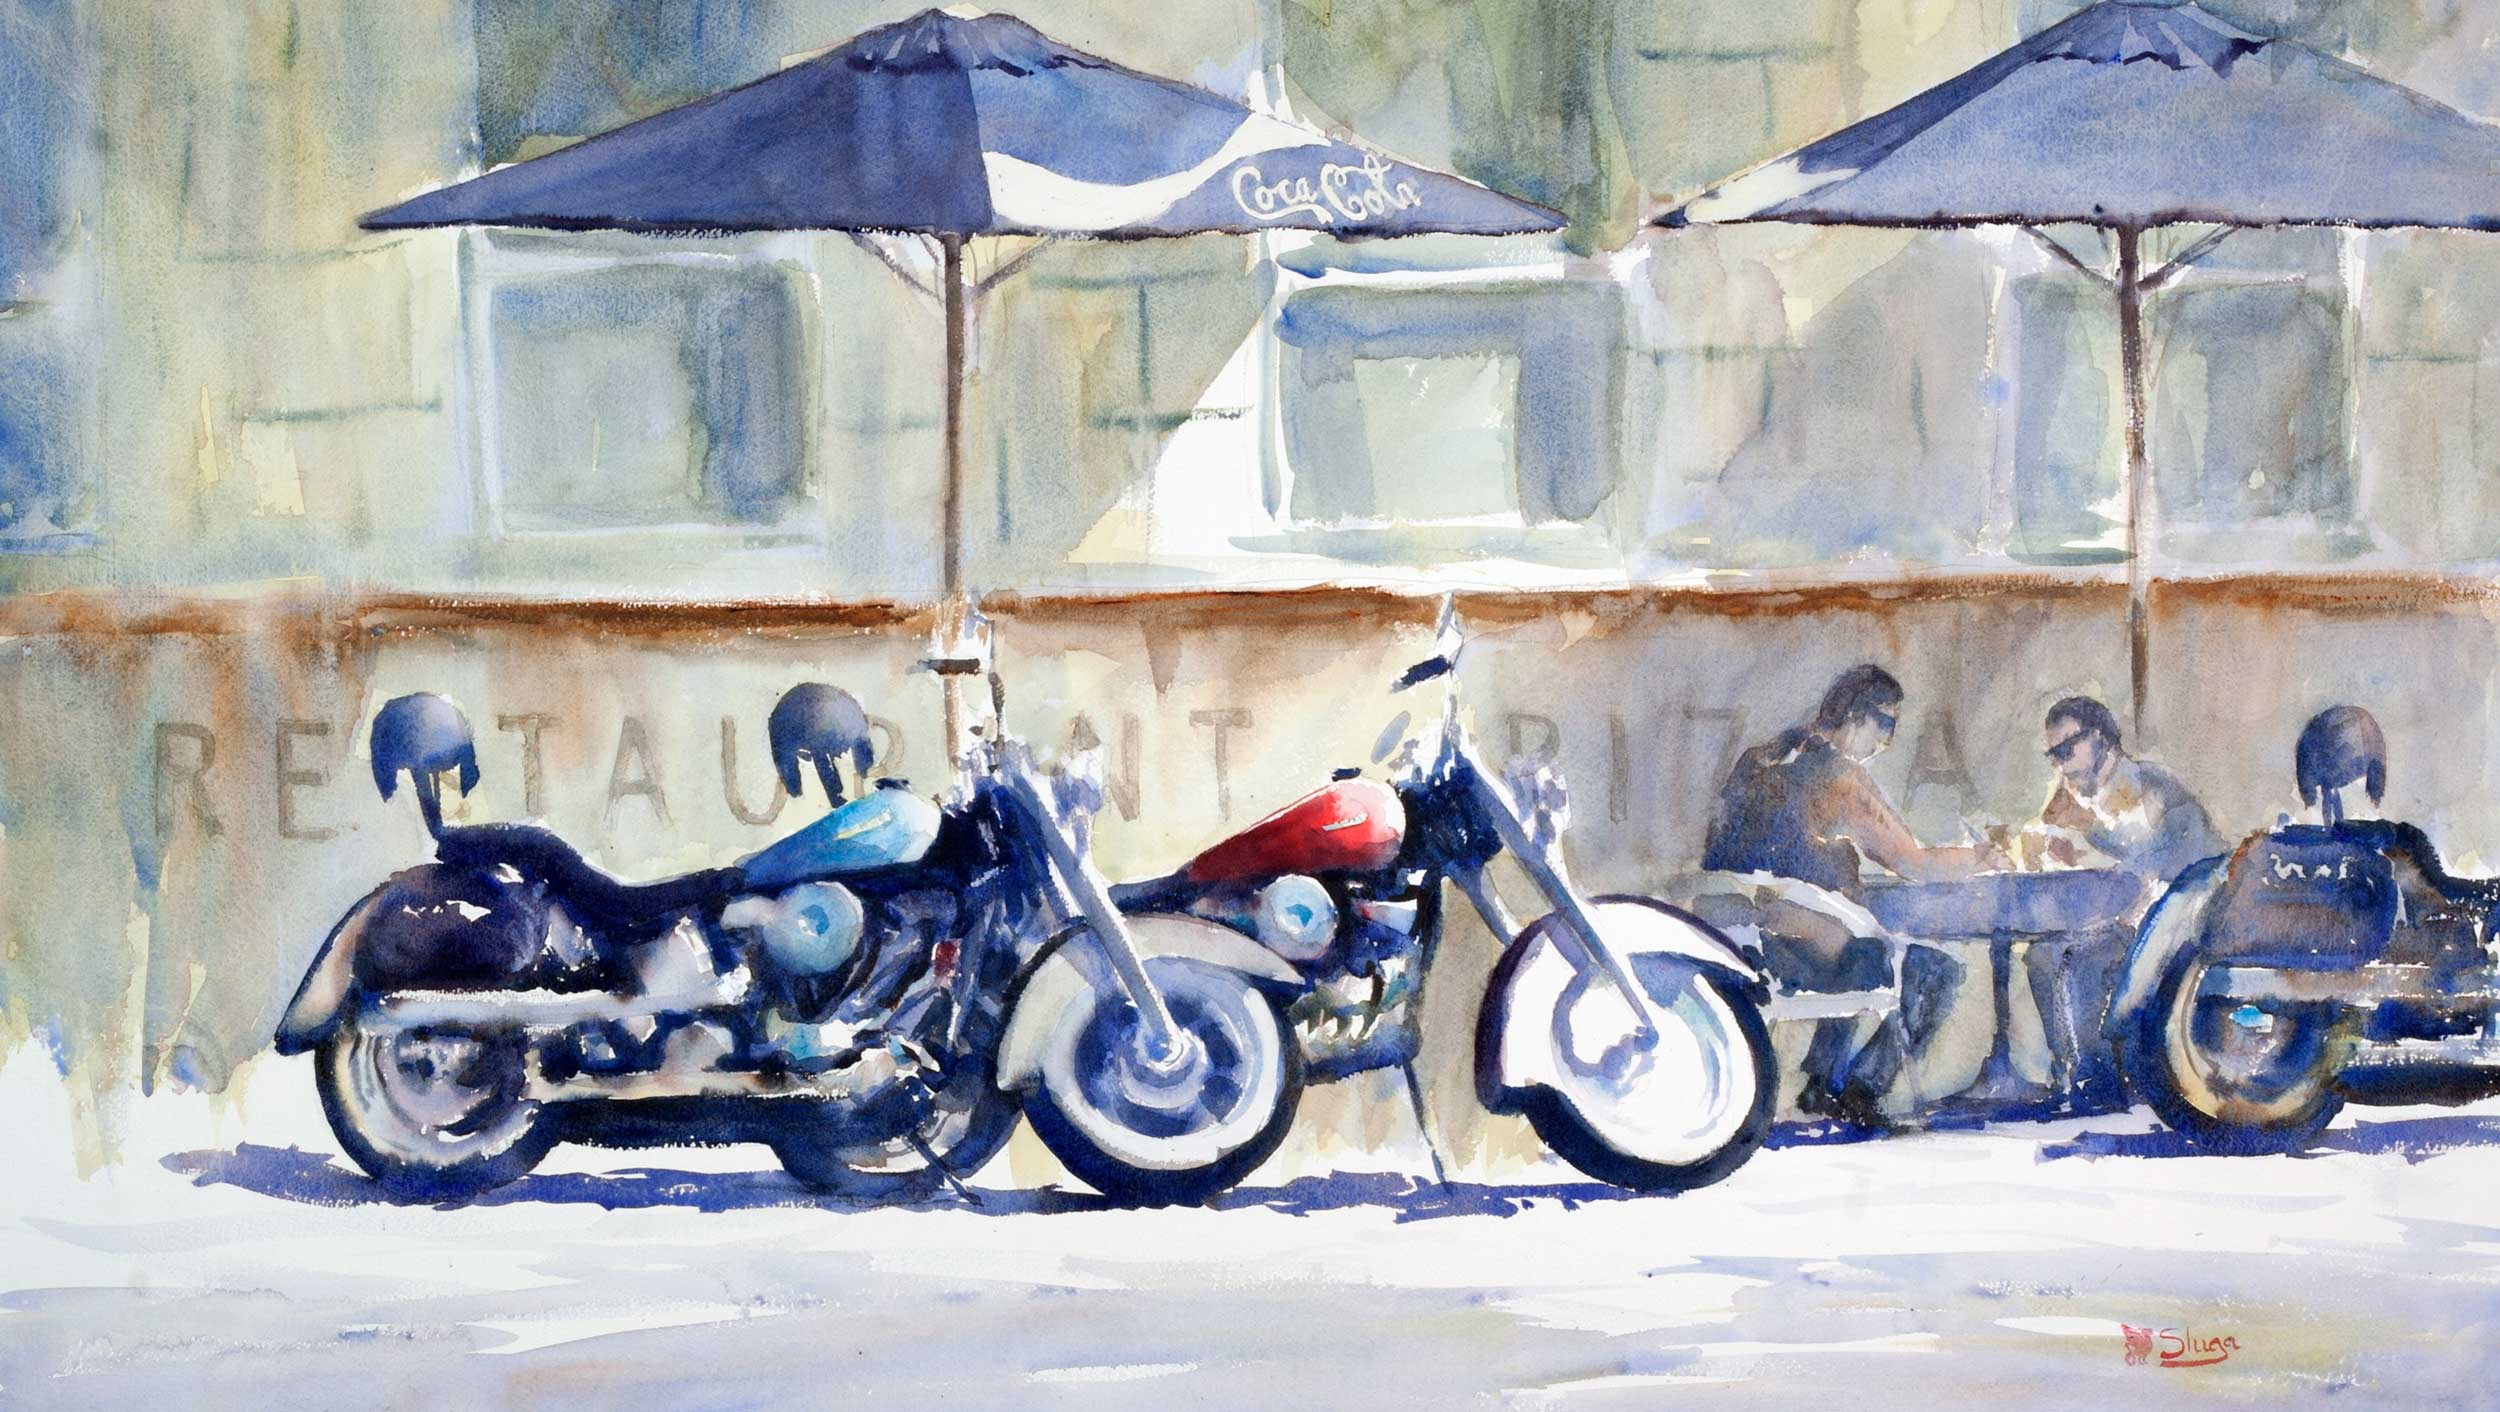 Harley and Gizzy 117 x 66 cm